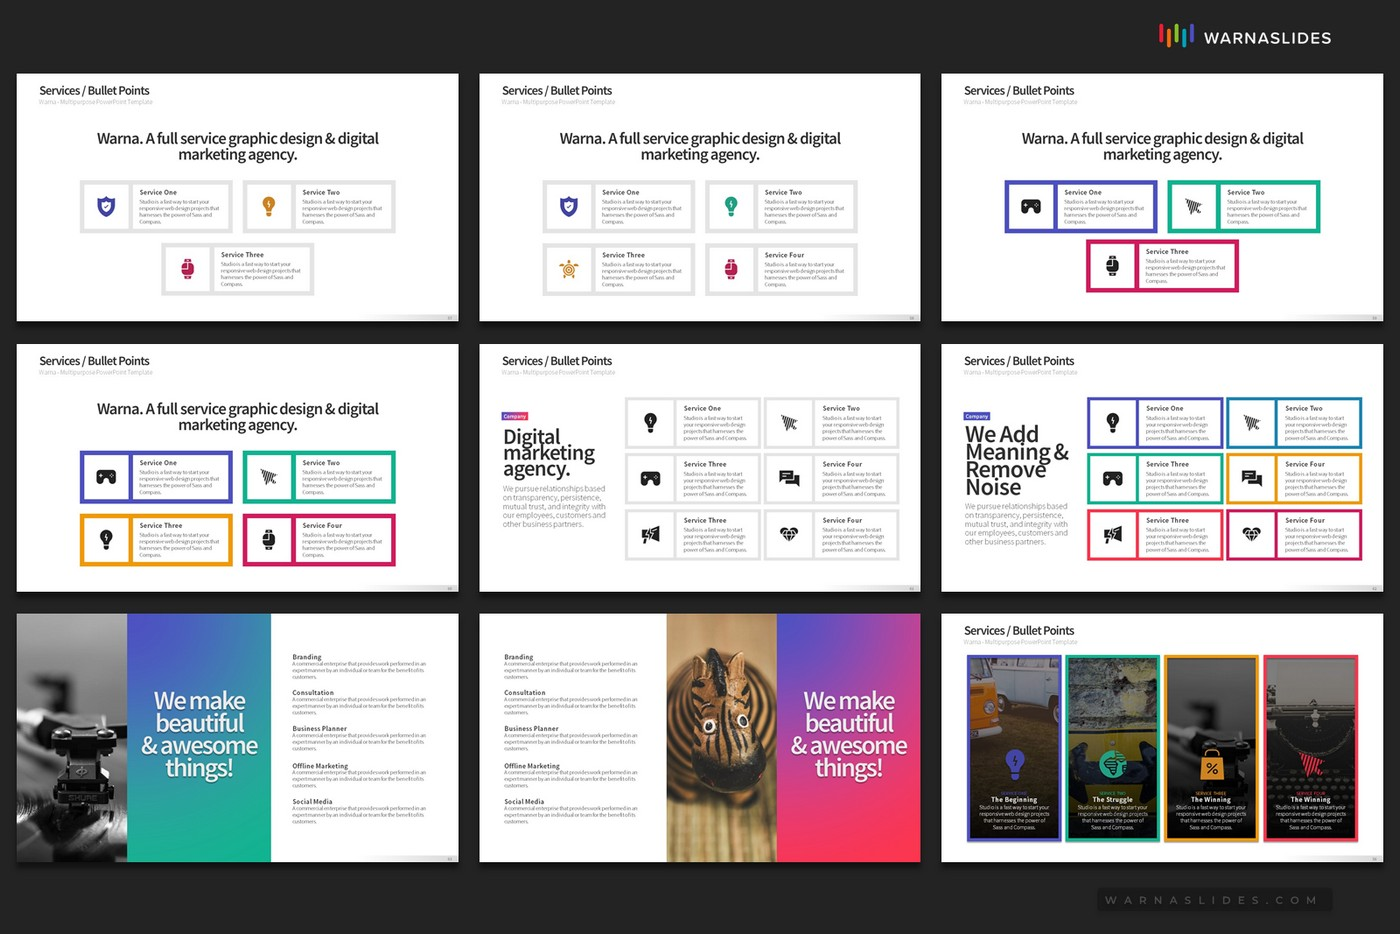 Services-SEO-Management-Bullet-Points-PowerPoint-Template-for-Business-Pitch-Deck-Professional-Creative-PowerPoint-Icons-012